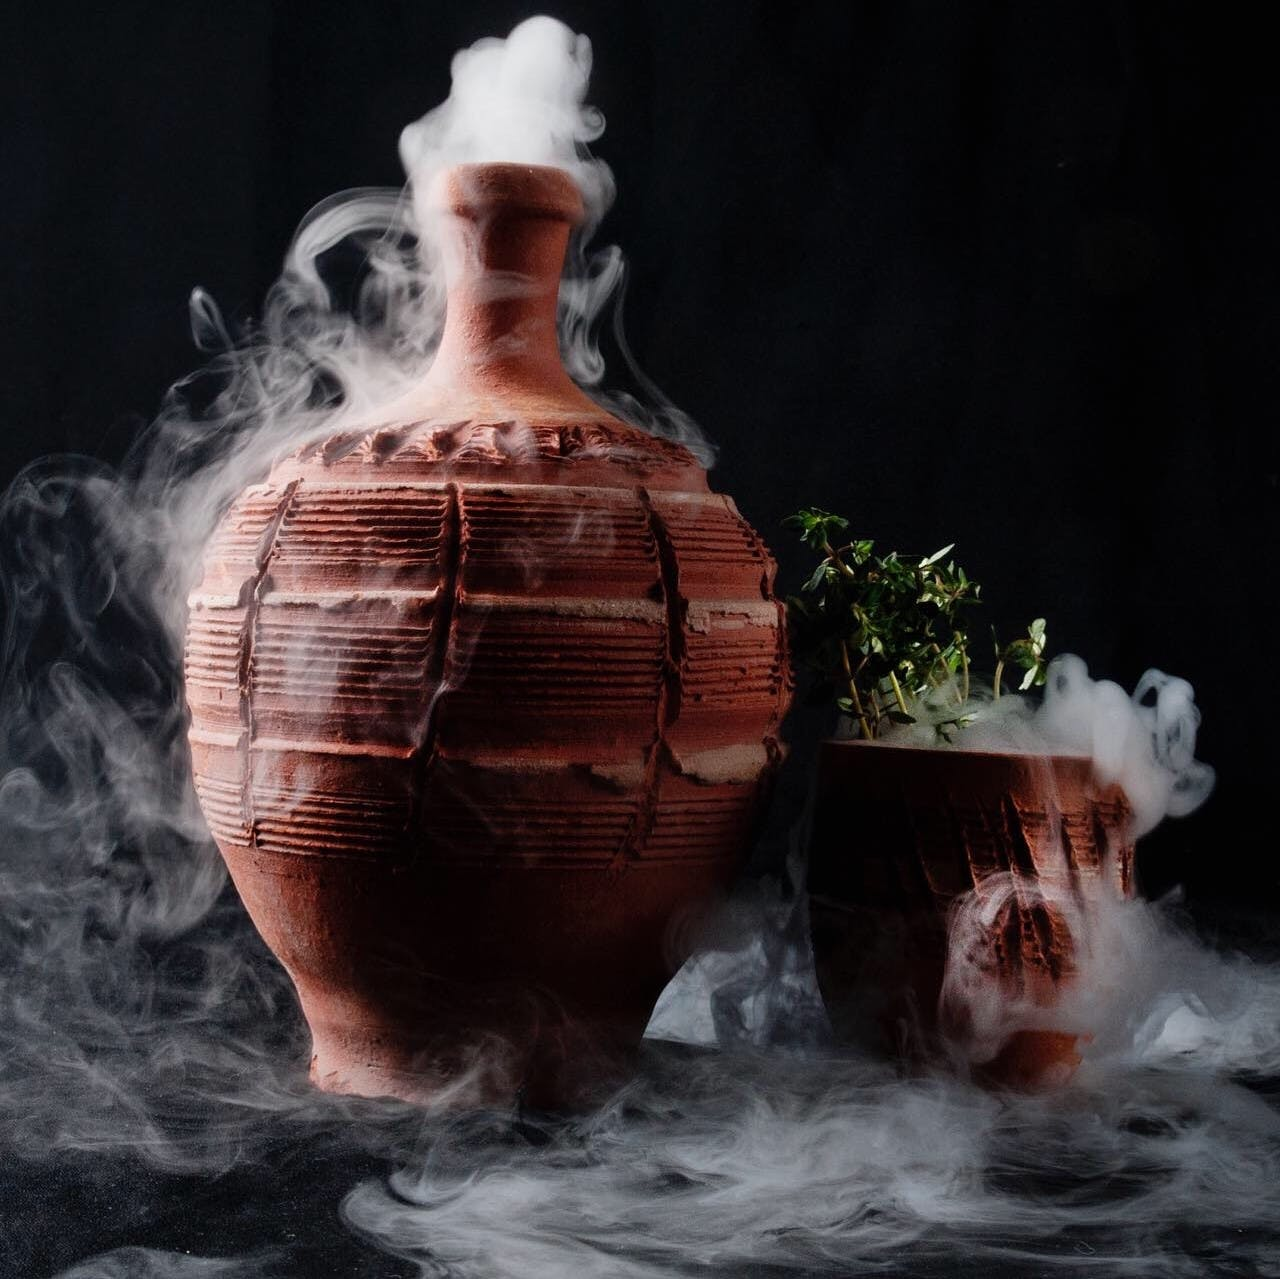 a close up of a bottle steaming vapor